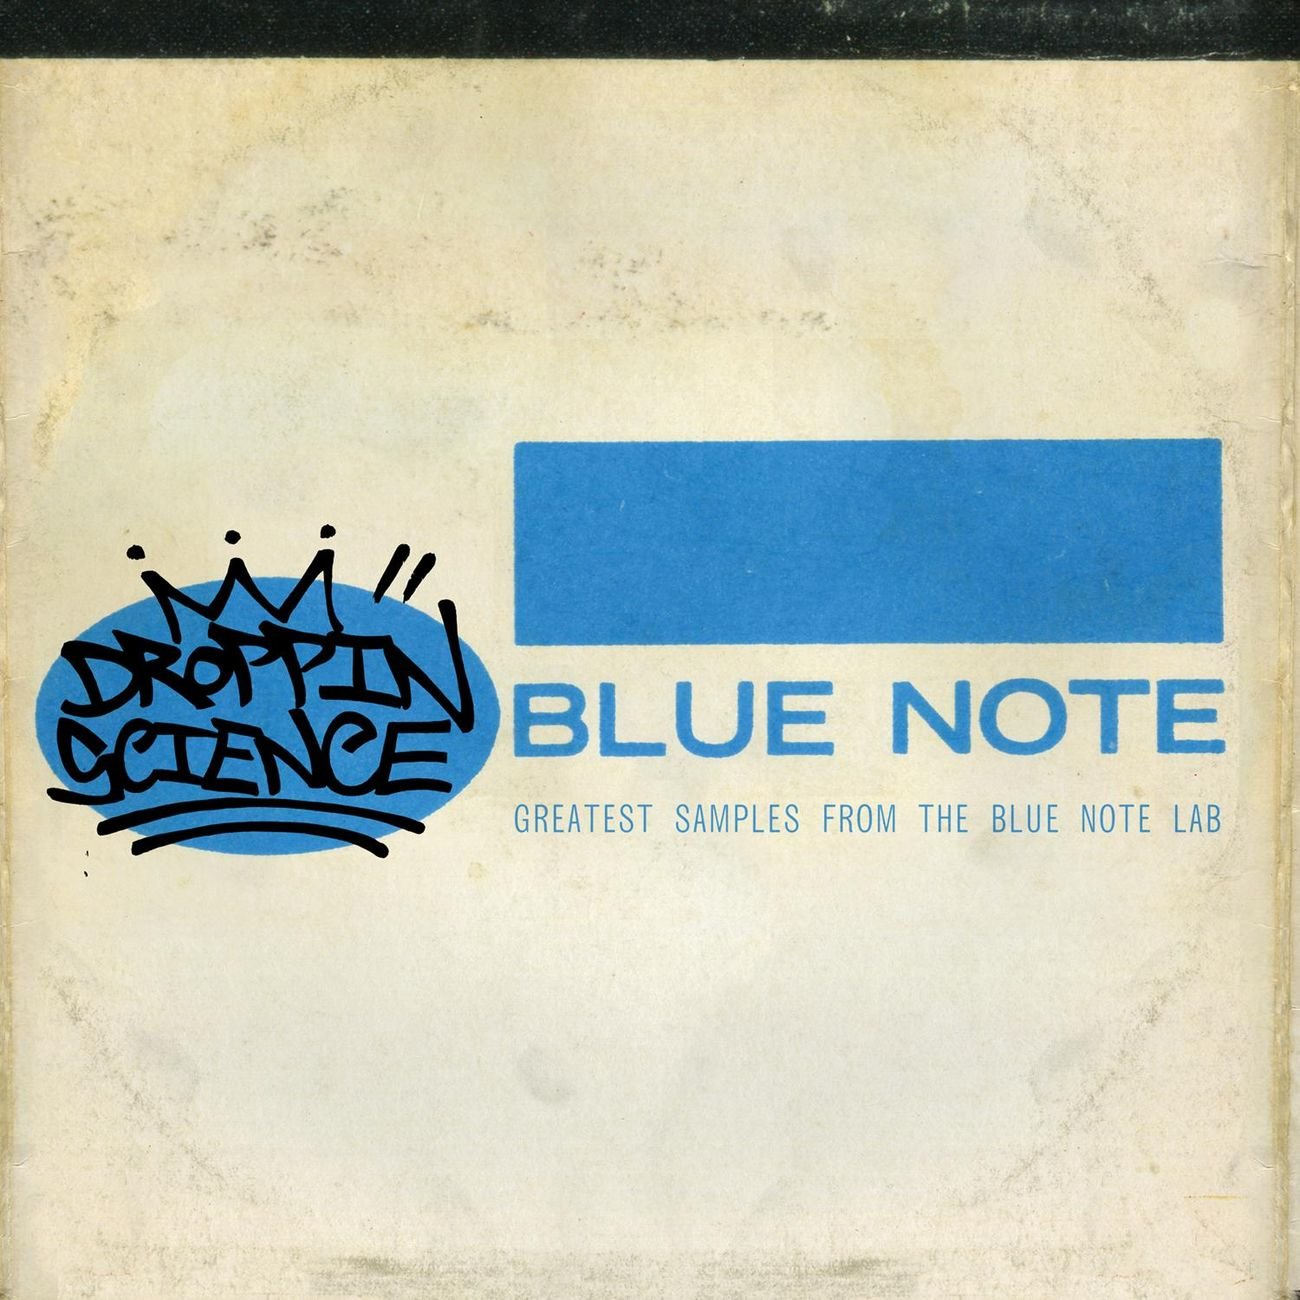 Various Artists, Droppin' Science: Greatest Samples From the Blue Note Lab